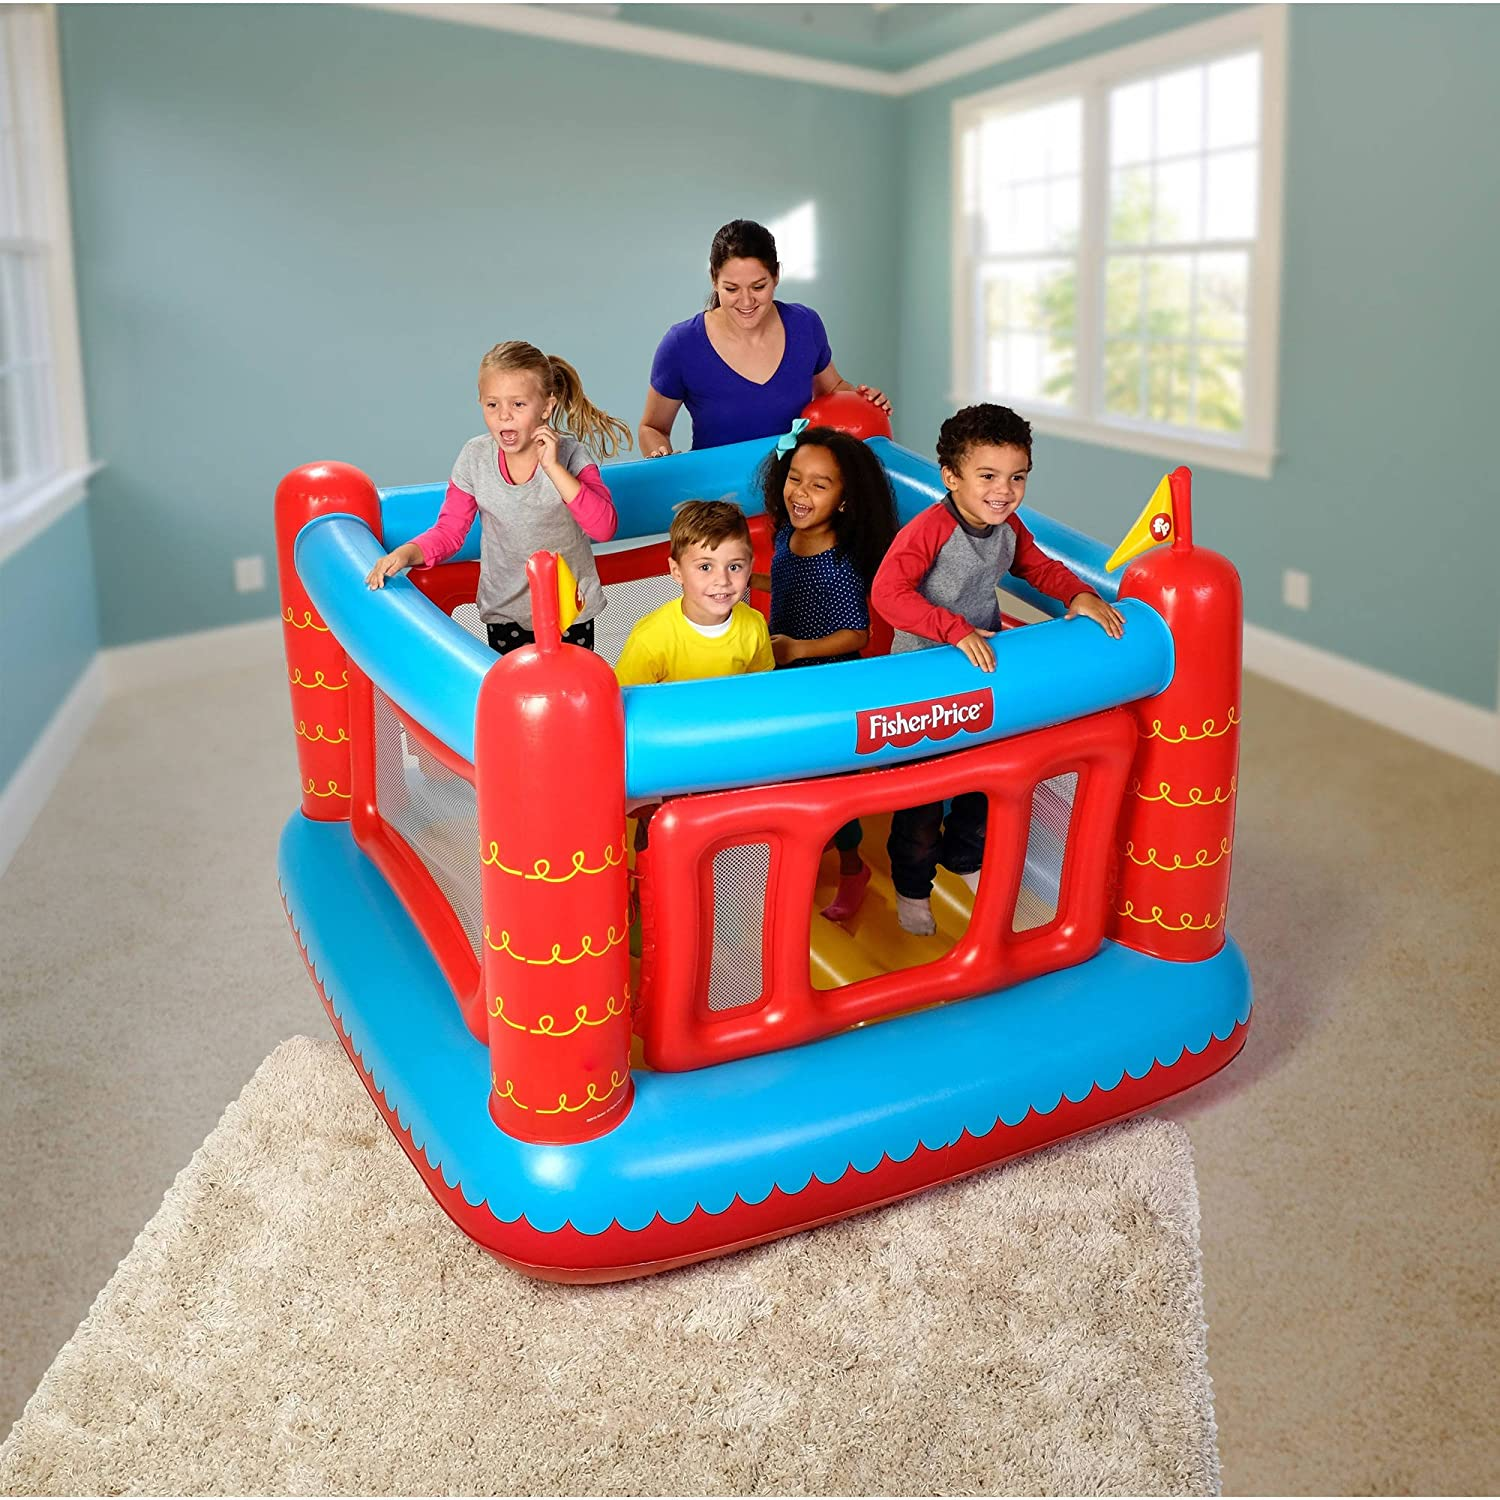 Amazon.com: Fisher Price Bouncetastic Inflatable Castle Bouncer With ...